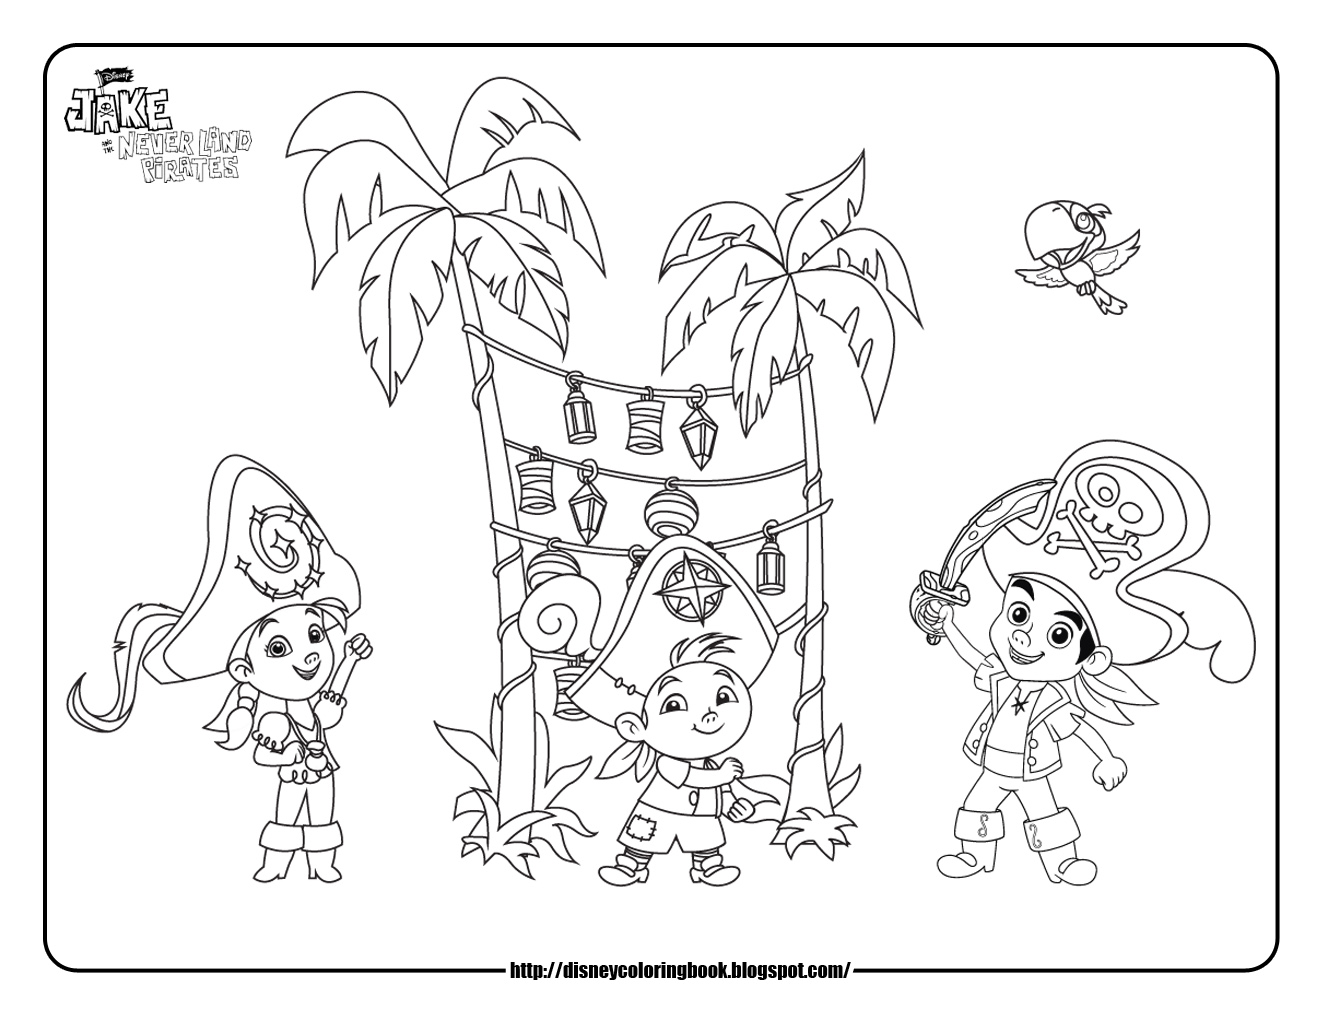 disney pirates coloring pages - photo#20